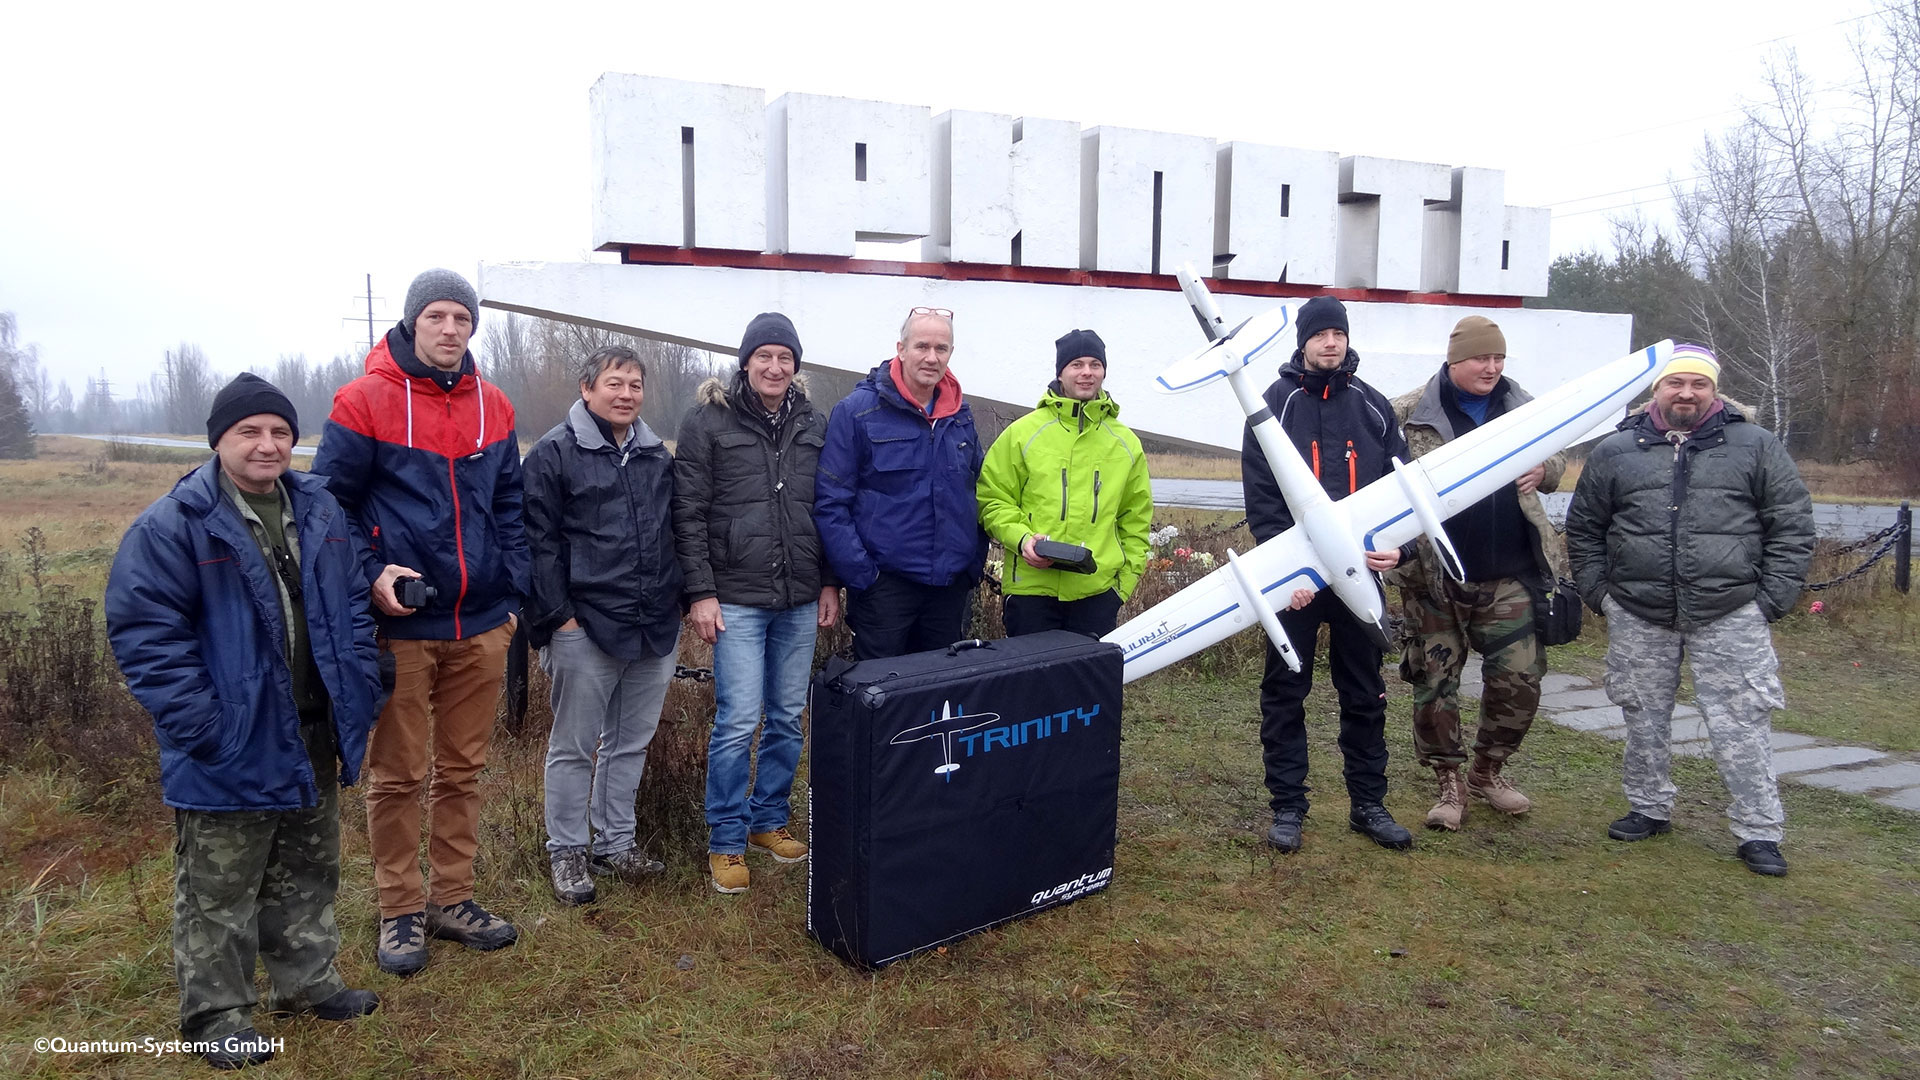 Figure 5: Research team of the University of Applied Sciences Munich, Dr. Norbert Molitor (third from left) and coworker of the NPP Chernobyl with the deployed drone of Quantum Systems (Photo: Karl Siebold)